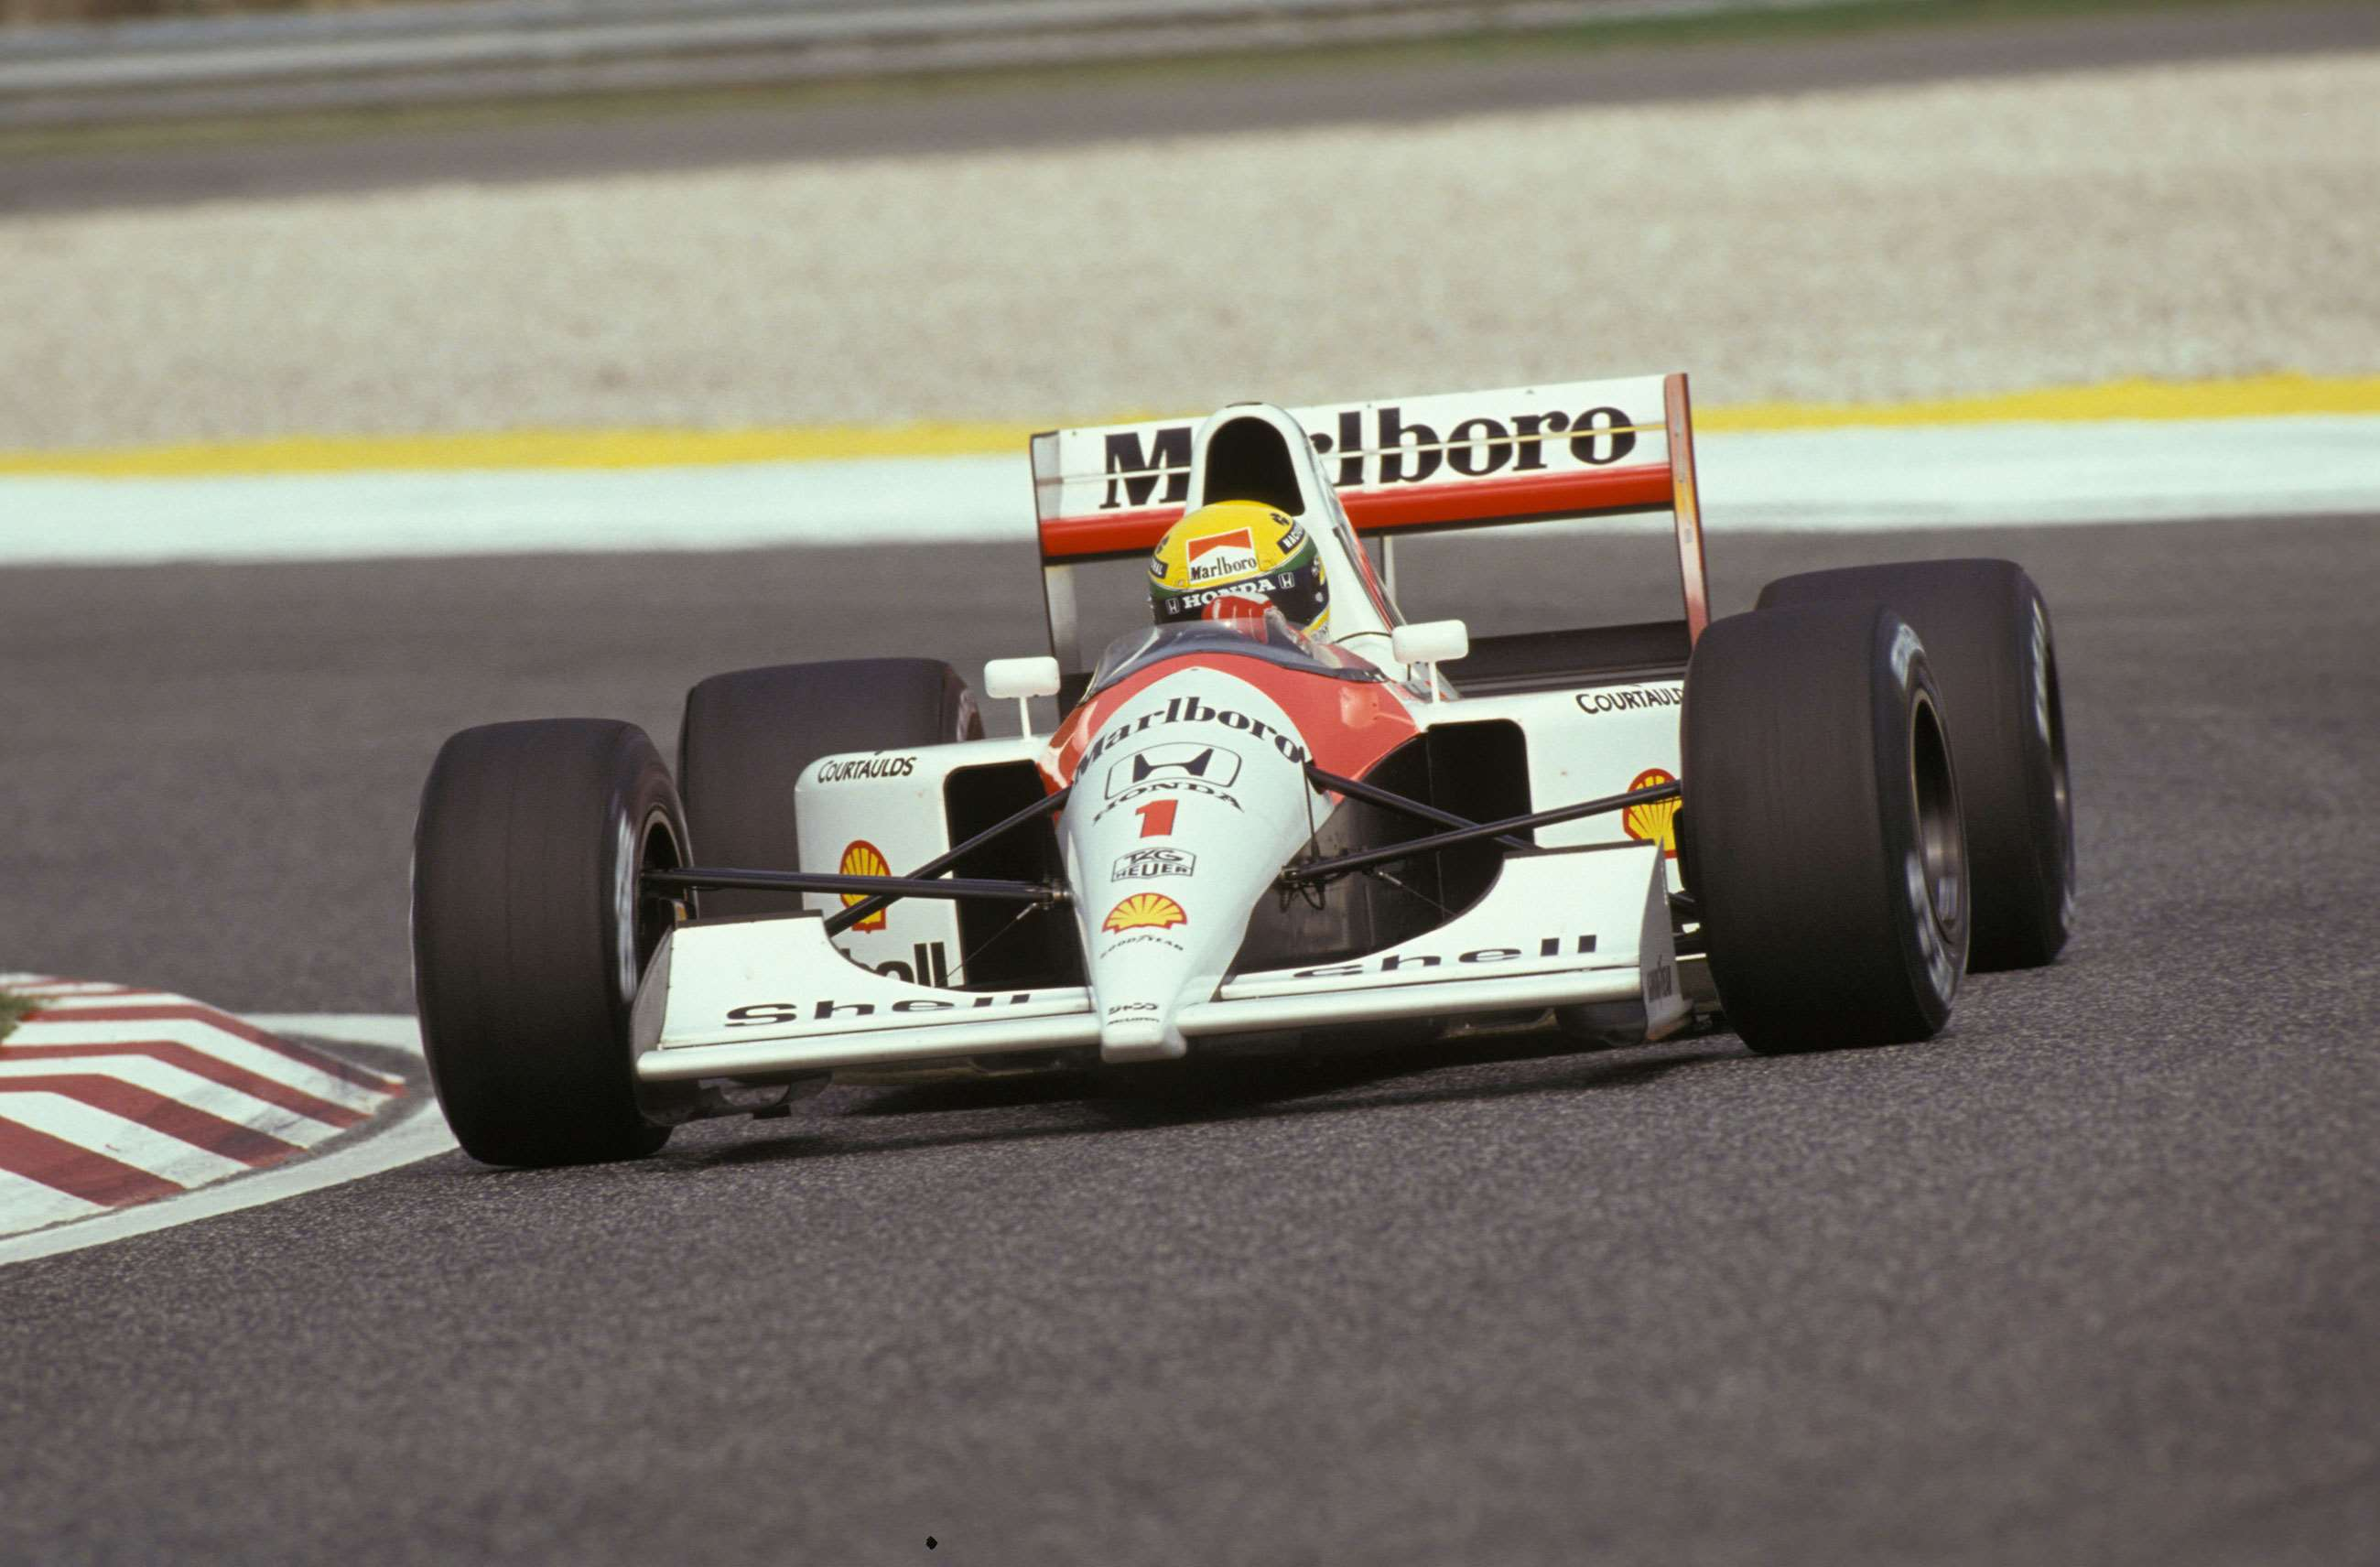 F1-1991-Portugal-Ayrton-Senna-McLaren-MP4-6-Ercole-Colombo-MI-Goodwood-22072020.jpg